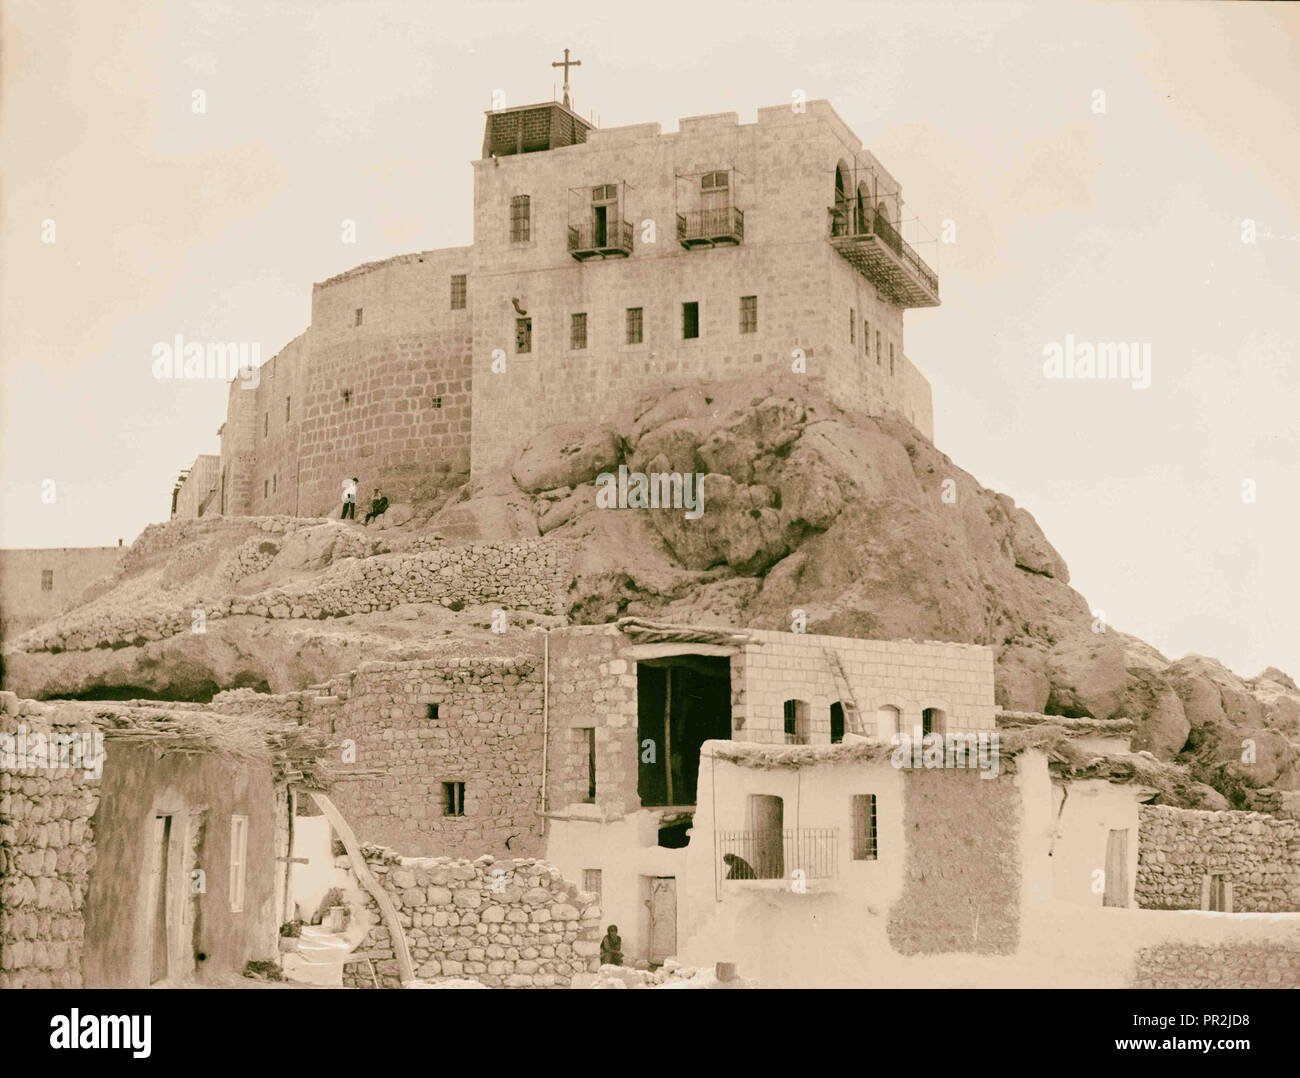 Deir Seidnaya showing the convent picturesquely perched on a cliff. 1920, Syria - Stock Image